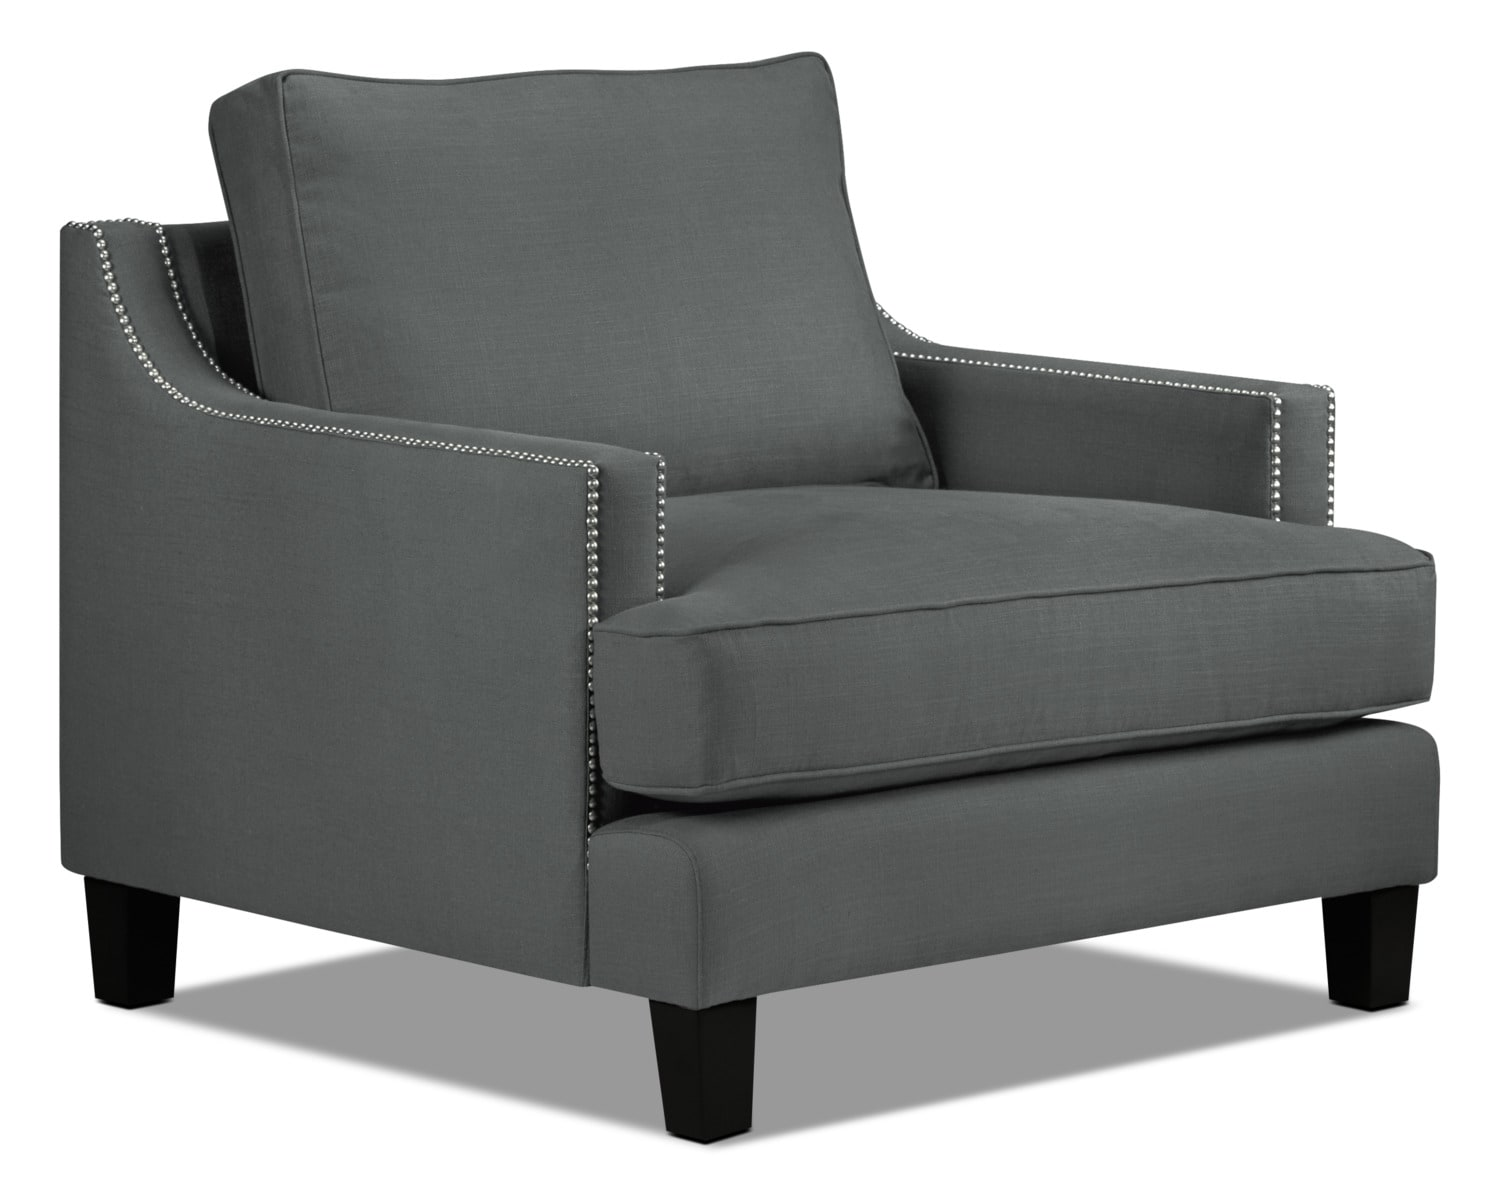 Living Room Furniture - Jules Chair - Charcoal